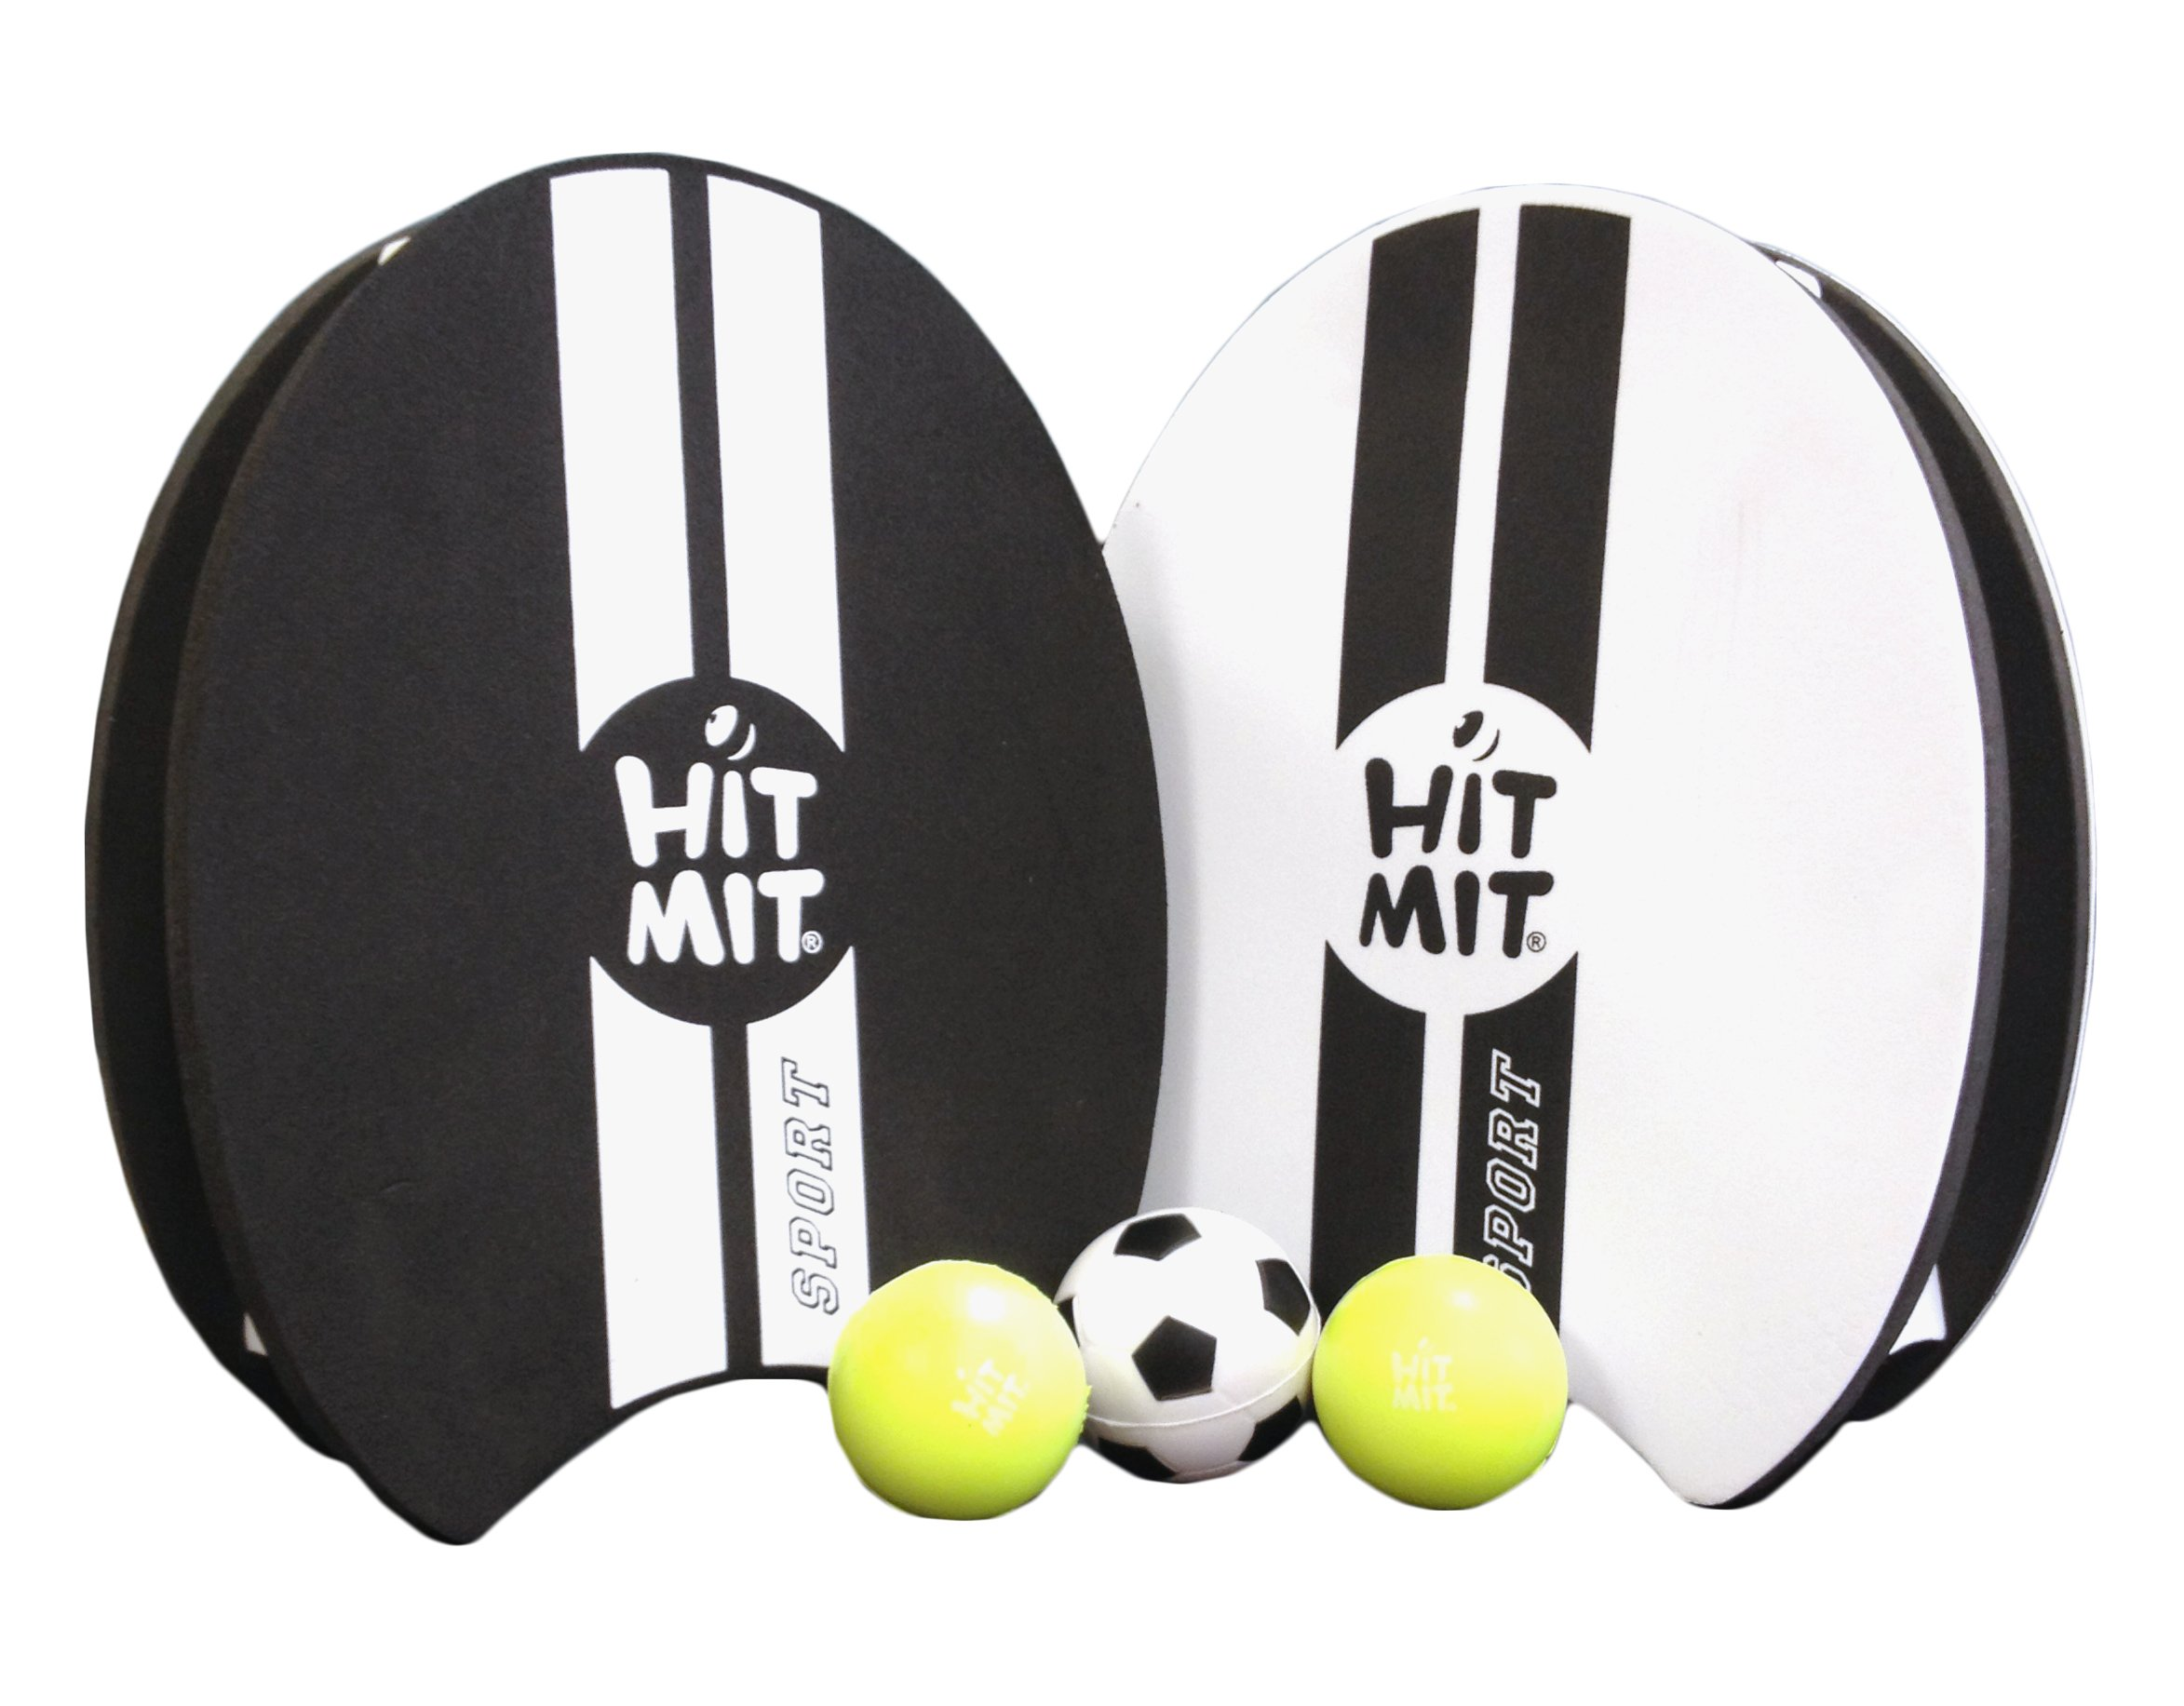 HIT MIT Sport All-Weather Waterproof Hand Paddle Ball Game - 2 paddles, 2 standard balls, 1 oversized ball, and 1 mesh bag for easy transport